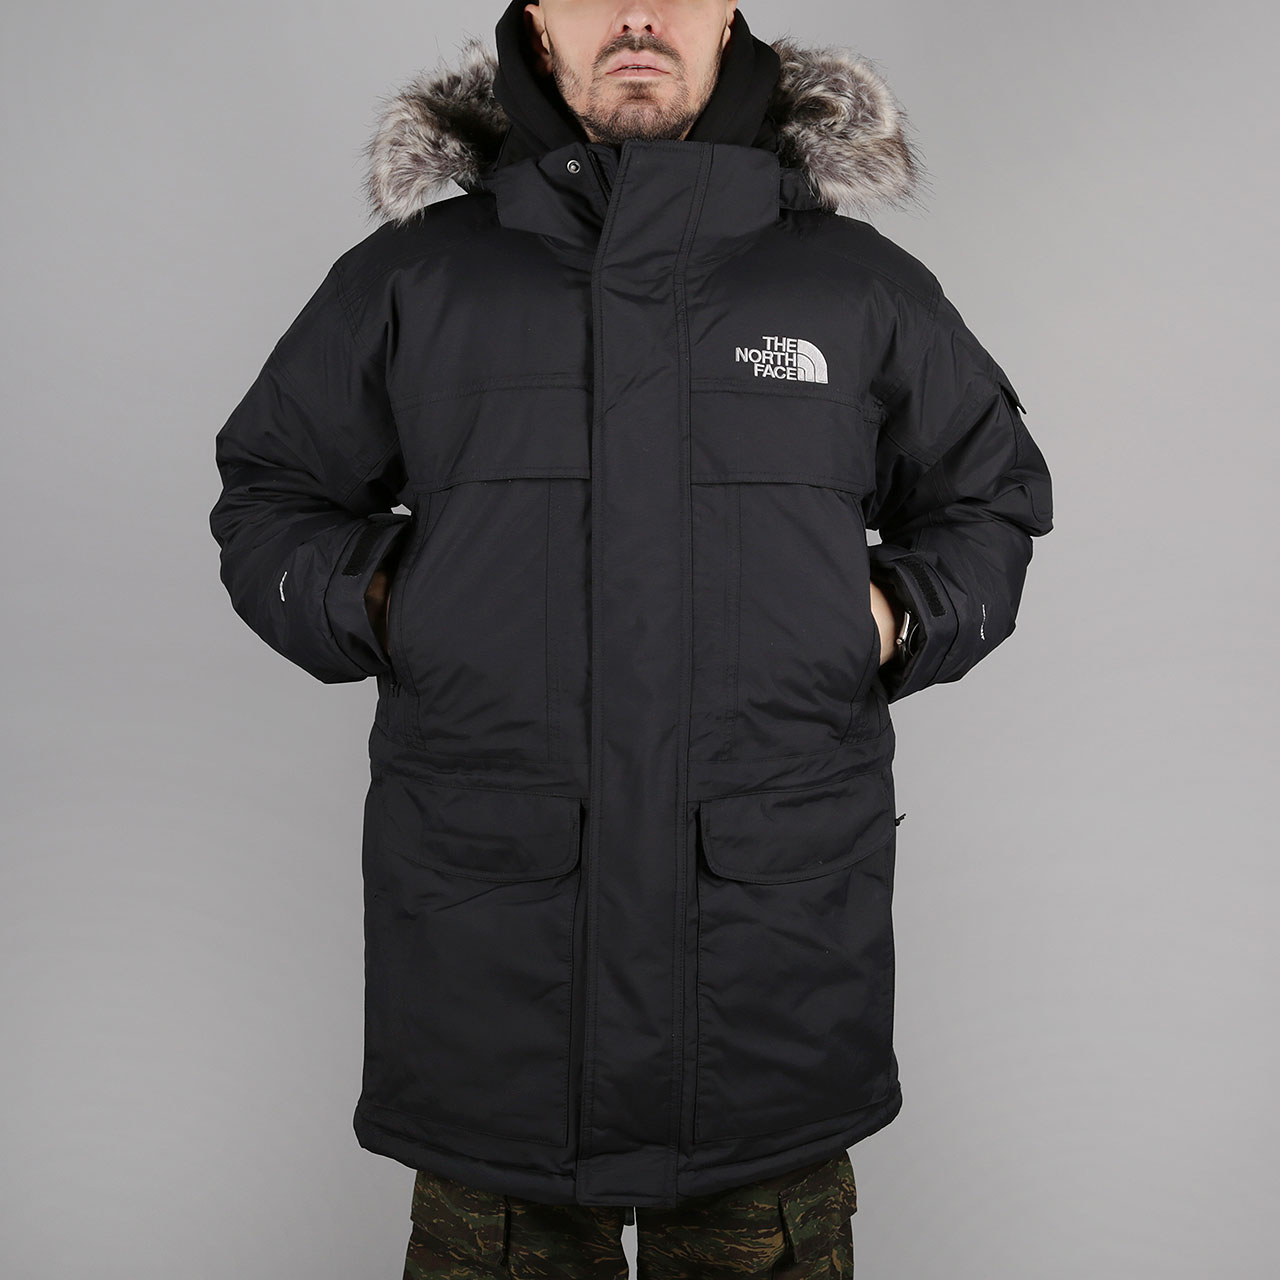 Пуховик The North Face The North Face Mcmurdo Parka фото